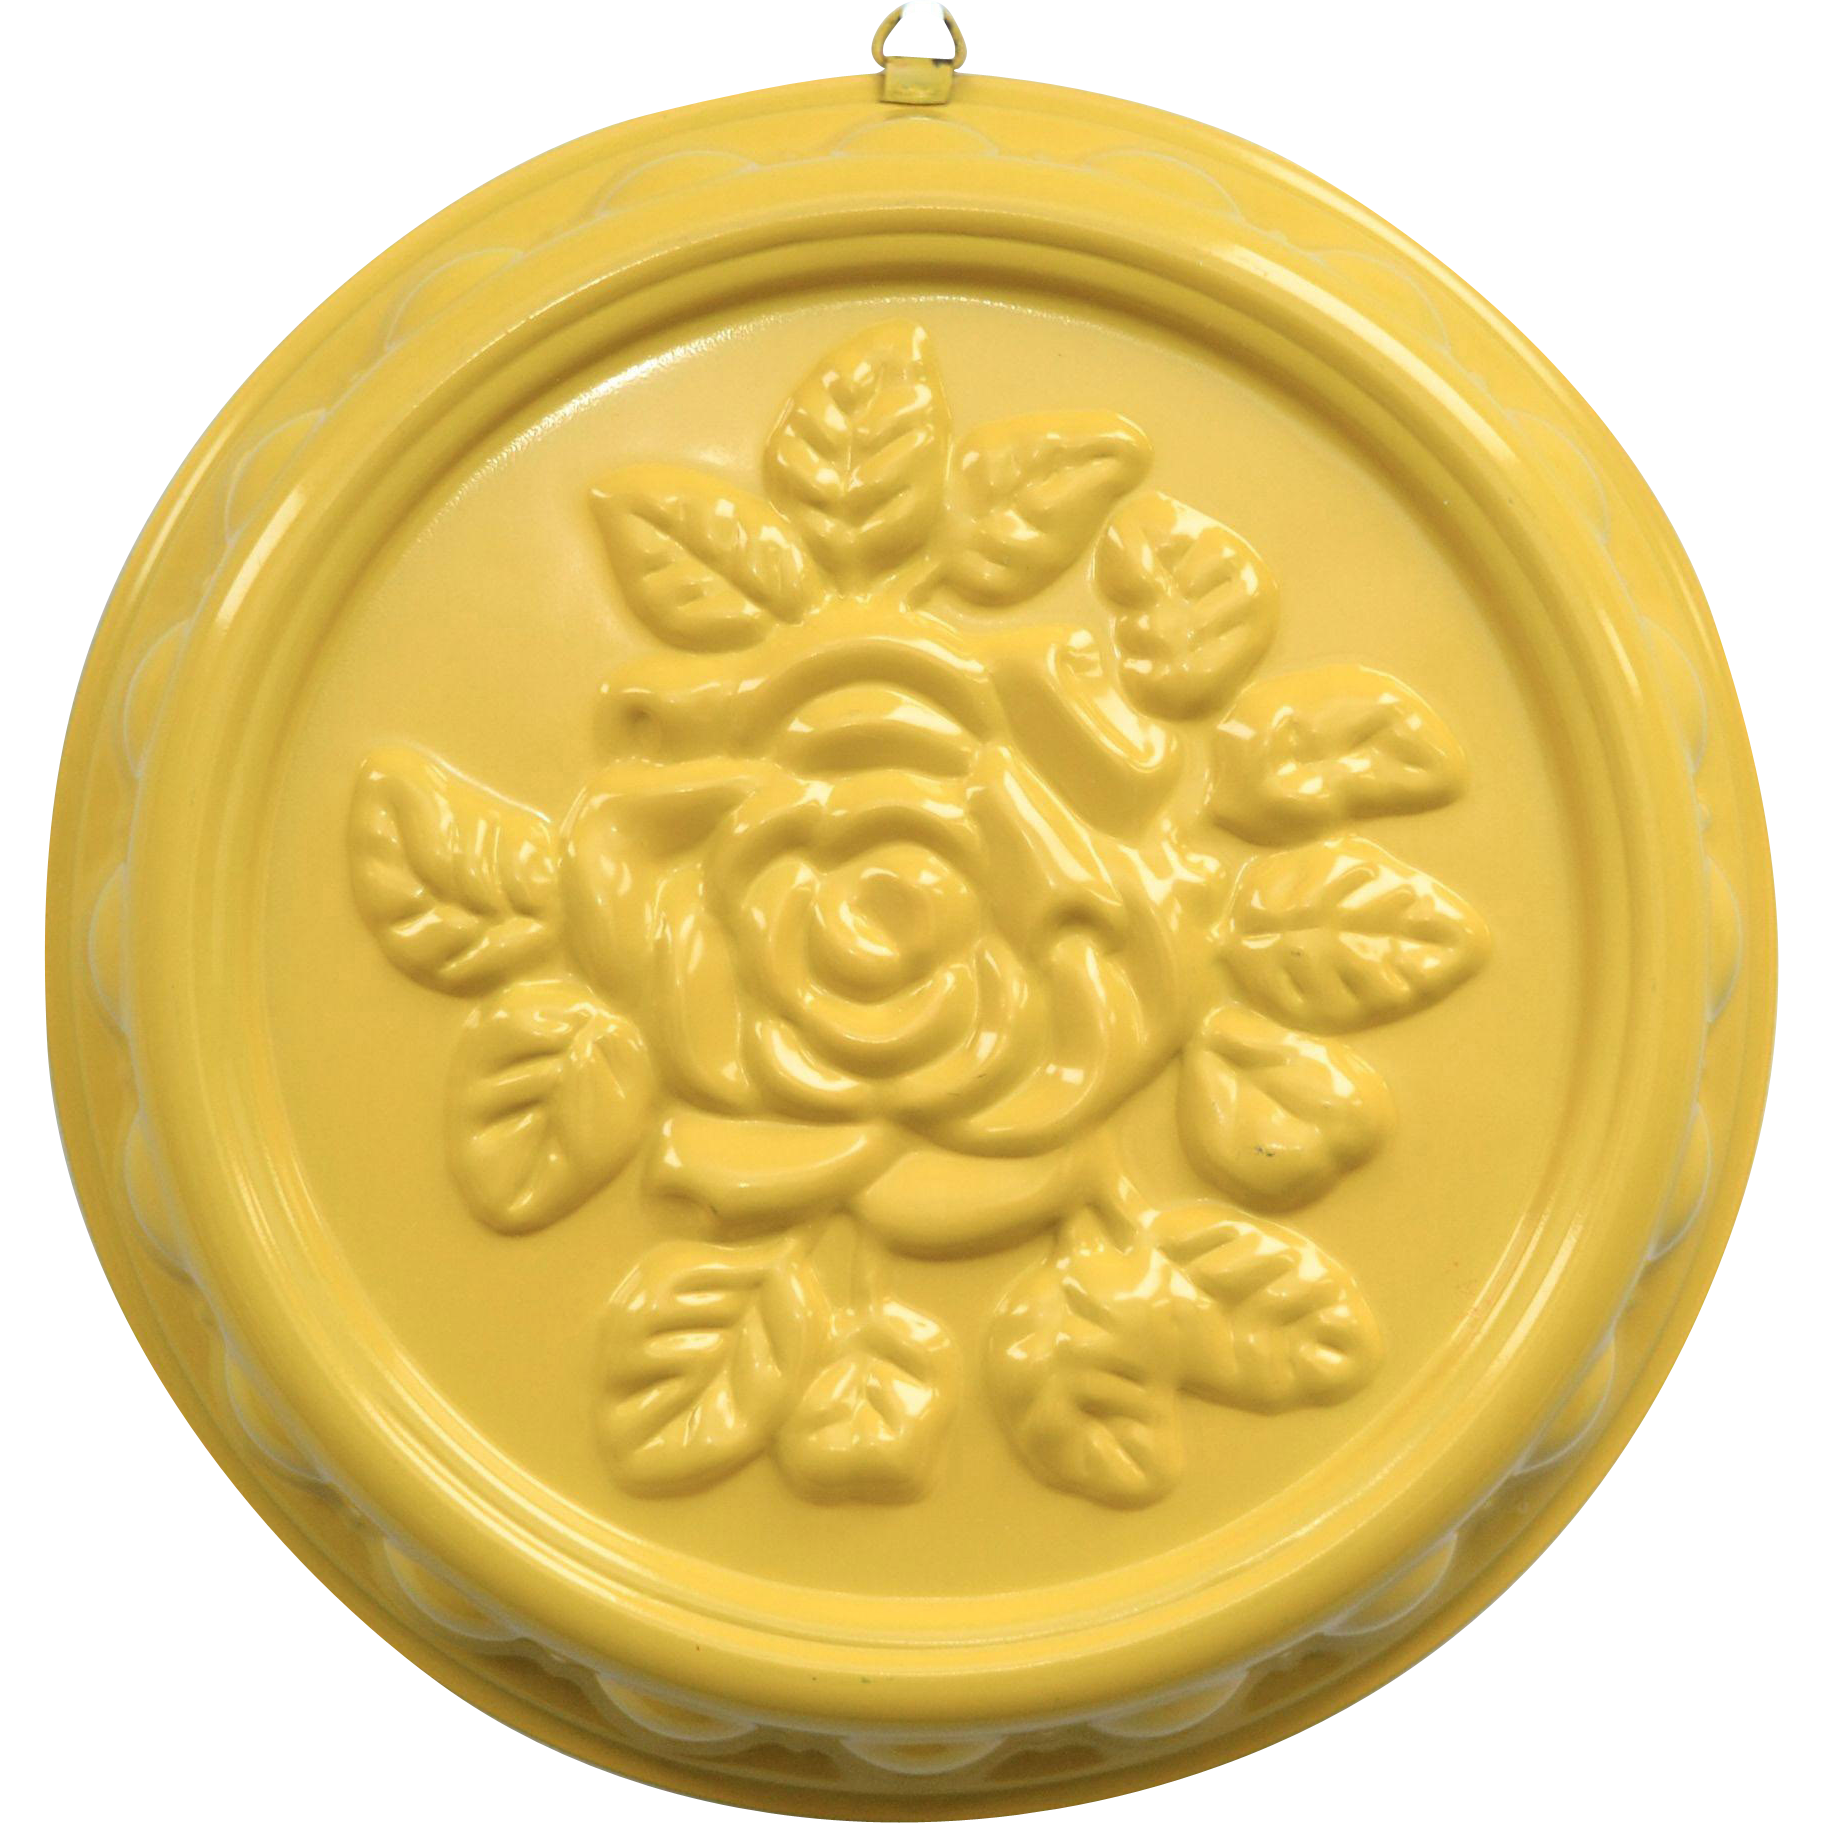 Large Yellow Enamel Rose Flower Embossed Cake Pan for Decoration or Use